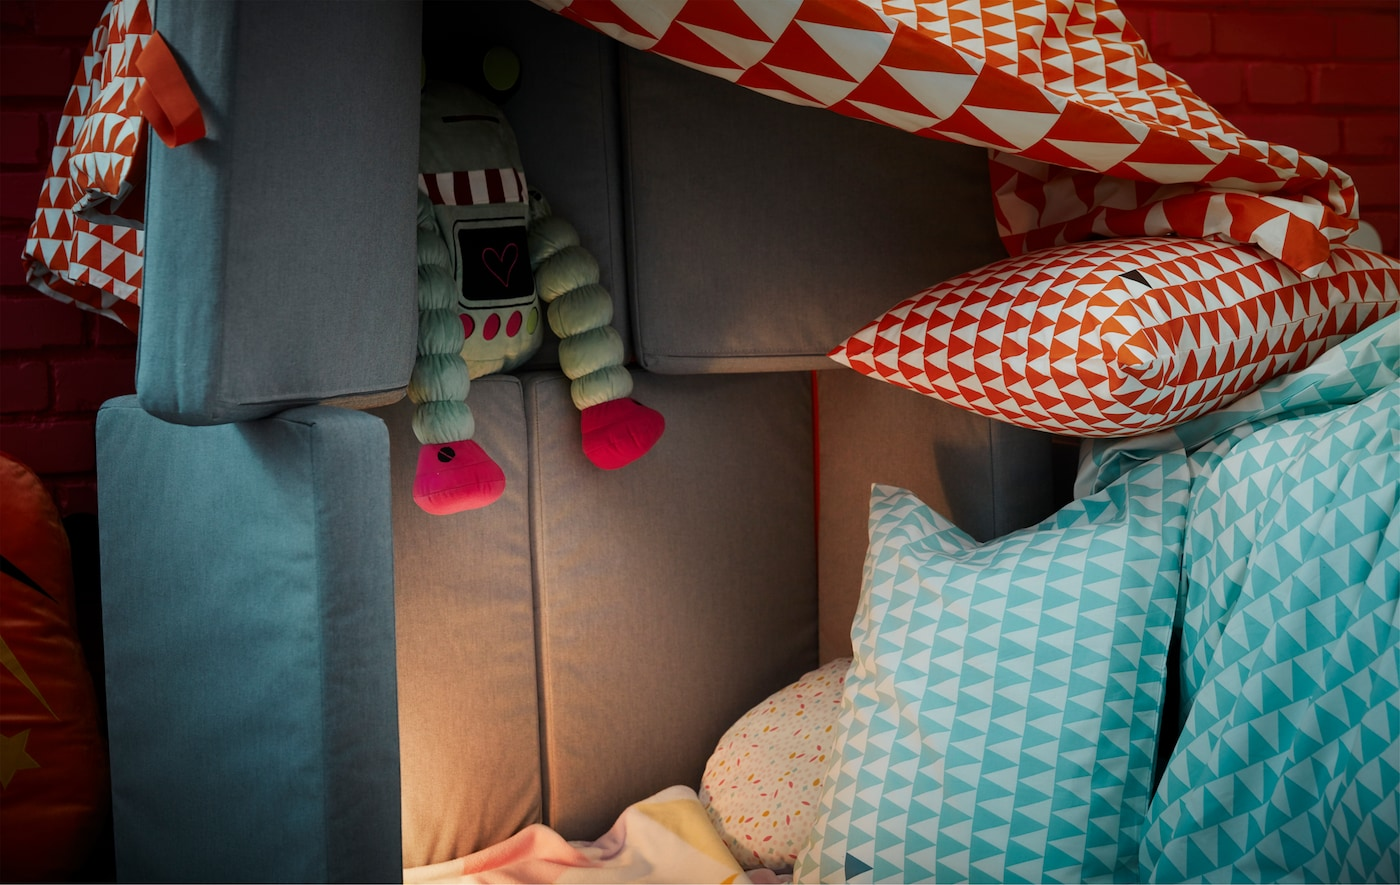 A jumble of bedsheets, cushions, soft toys and a foldable mattress created as a children's fort.